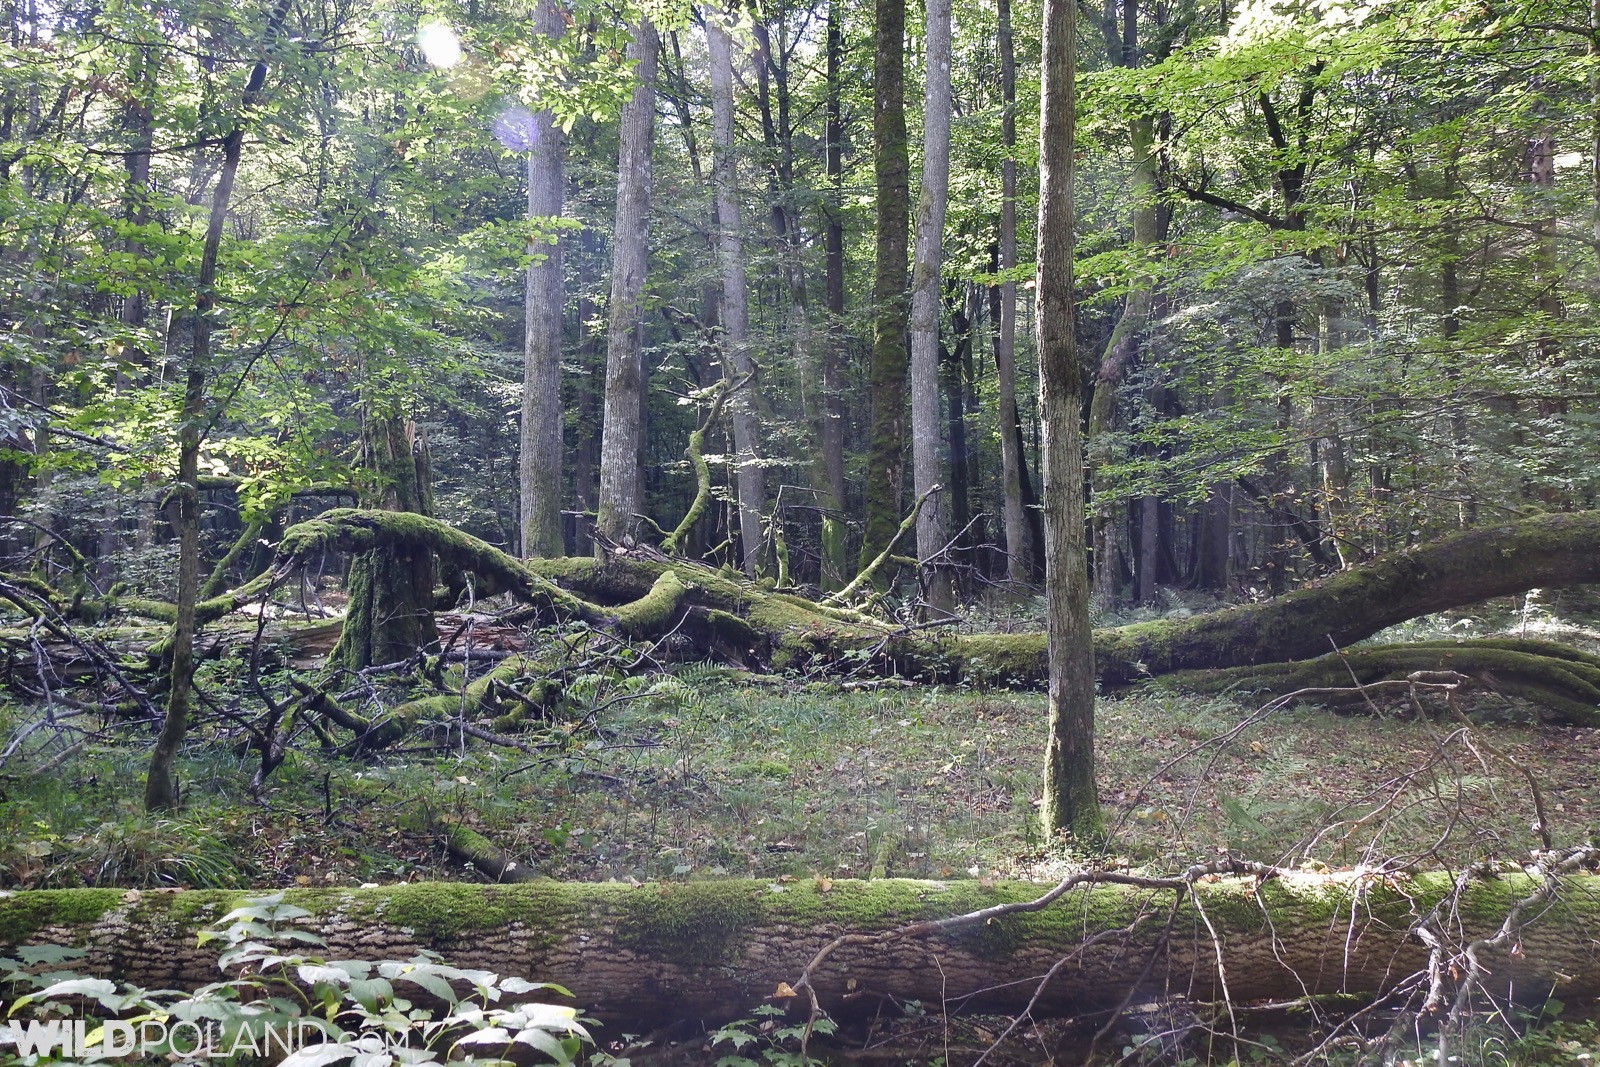 Inside Europe's last natural lowland forest, photo Marta Świtała